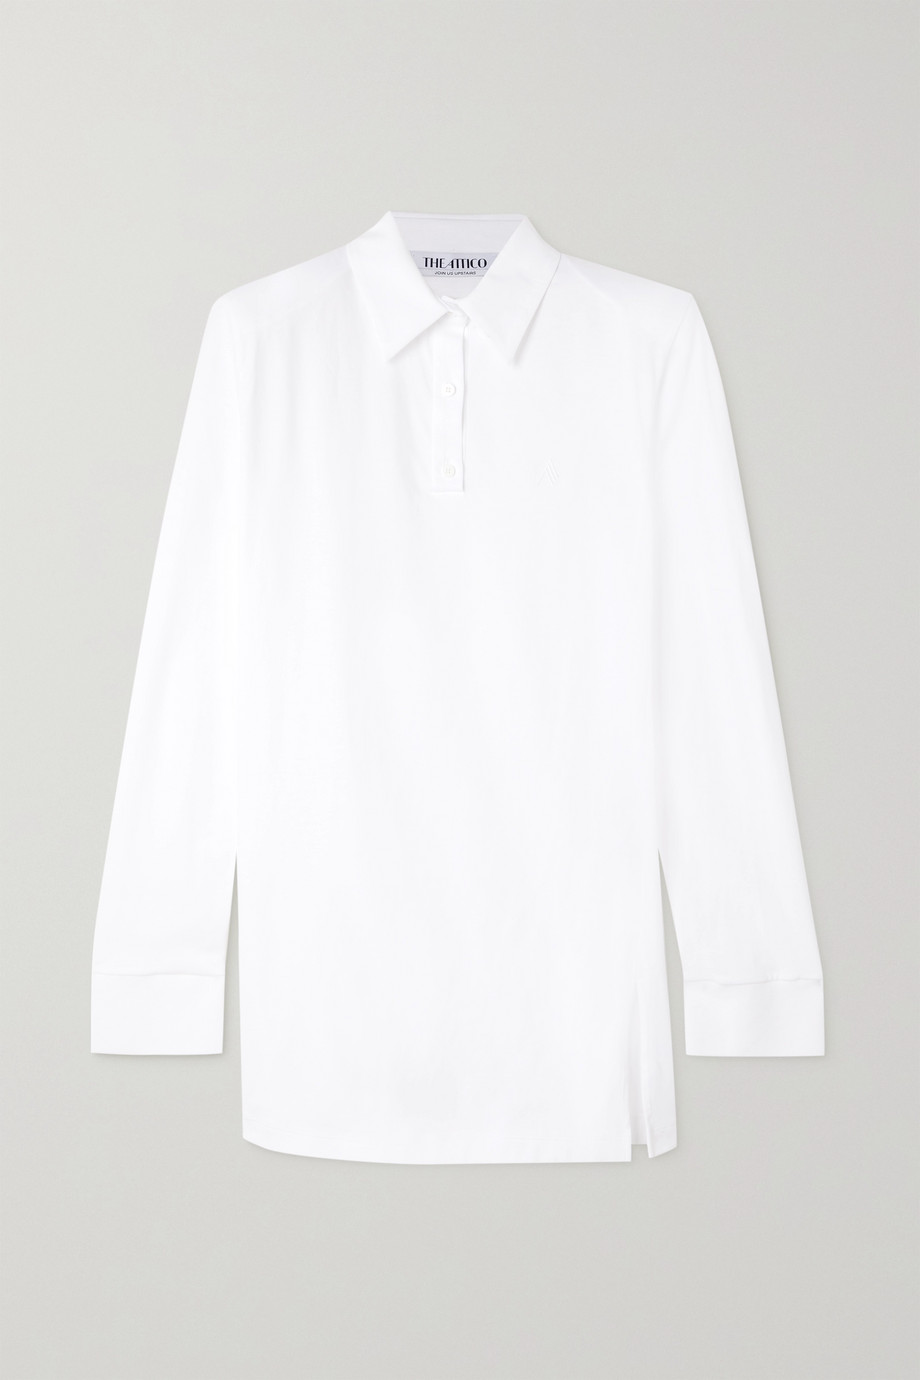 THE ATTICO Astrid cotton-piqué mini shirt dress